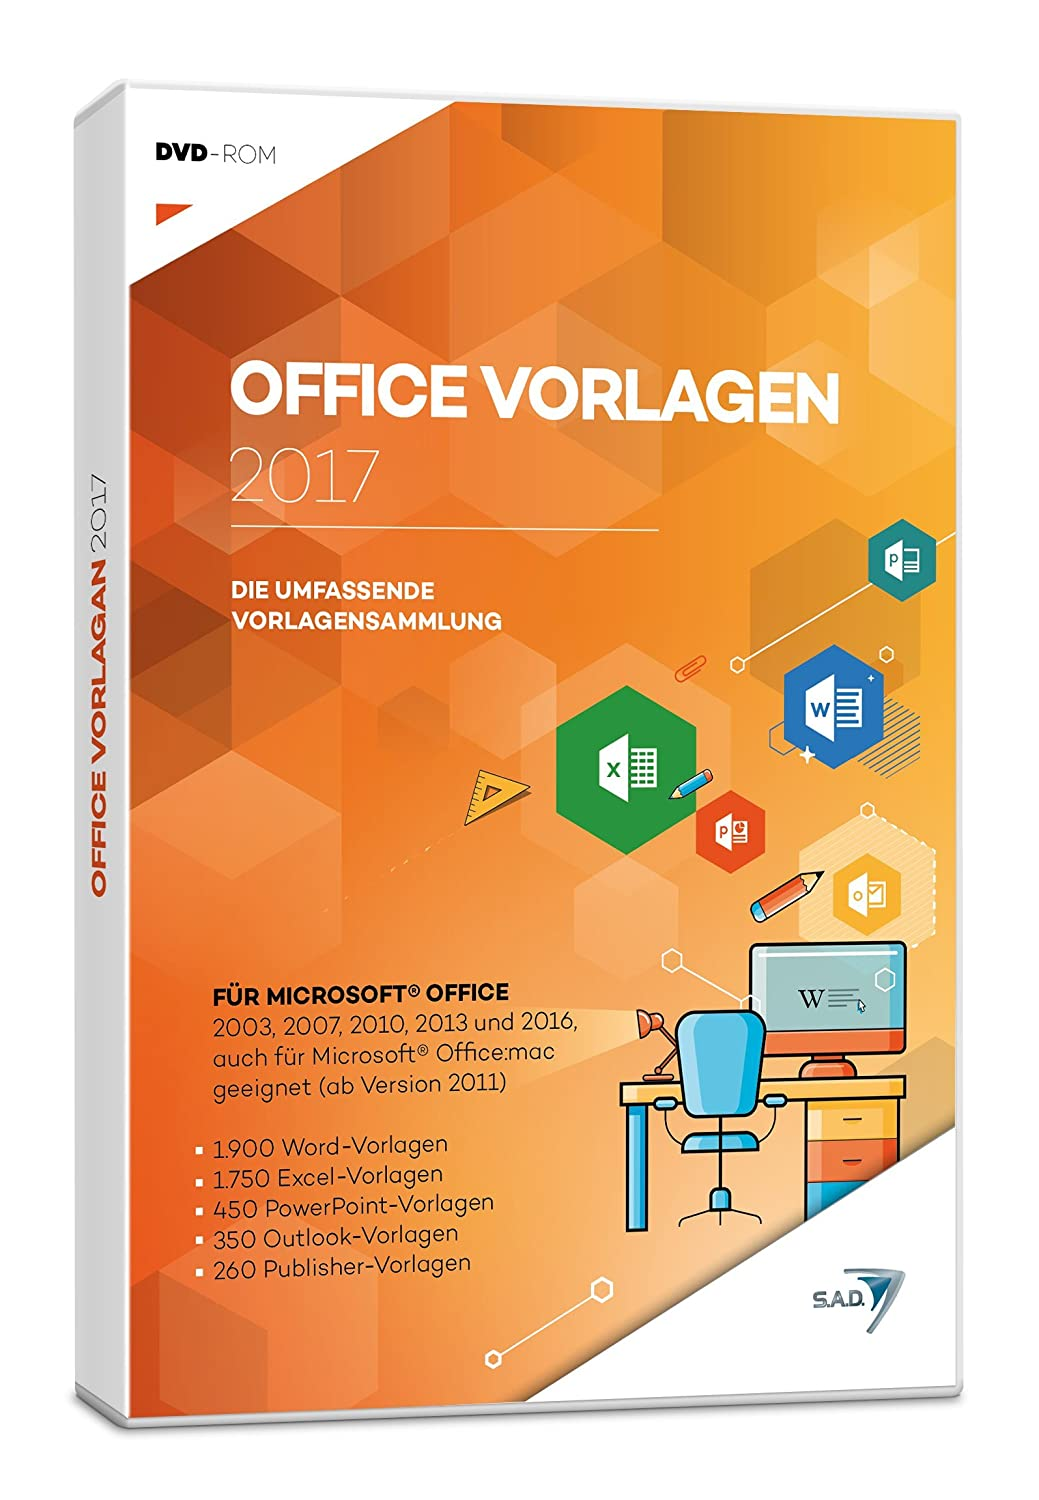 Office Vorlagen 2017: Amazon.de: Software